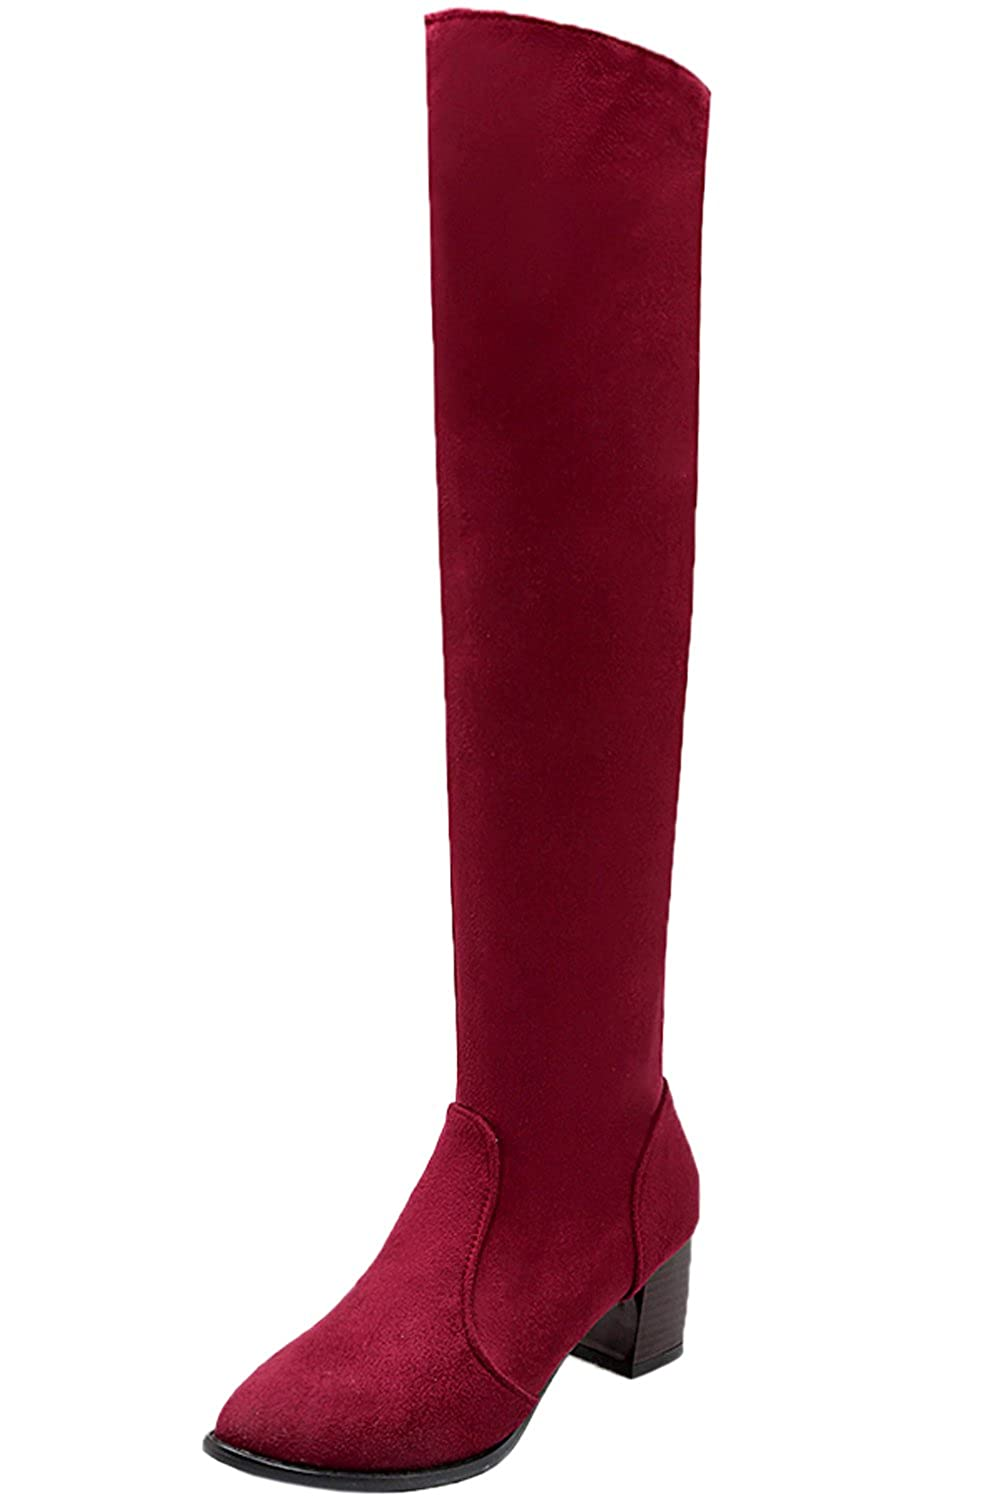 4dd6f783a Amazon.com | Over Knee Boots Fall Winter Women Faux Suede Casual Chunky  Long Boots by Bigtree | Over-the-Knee